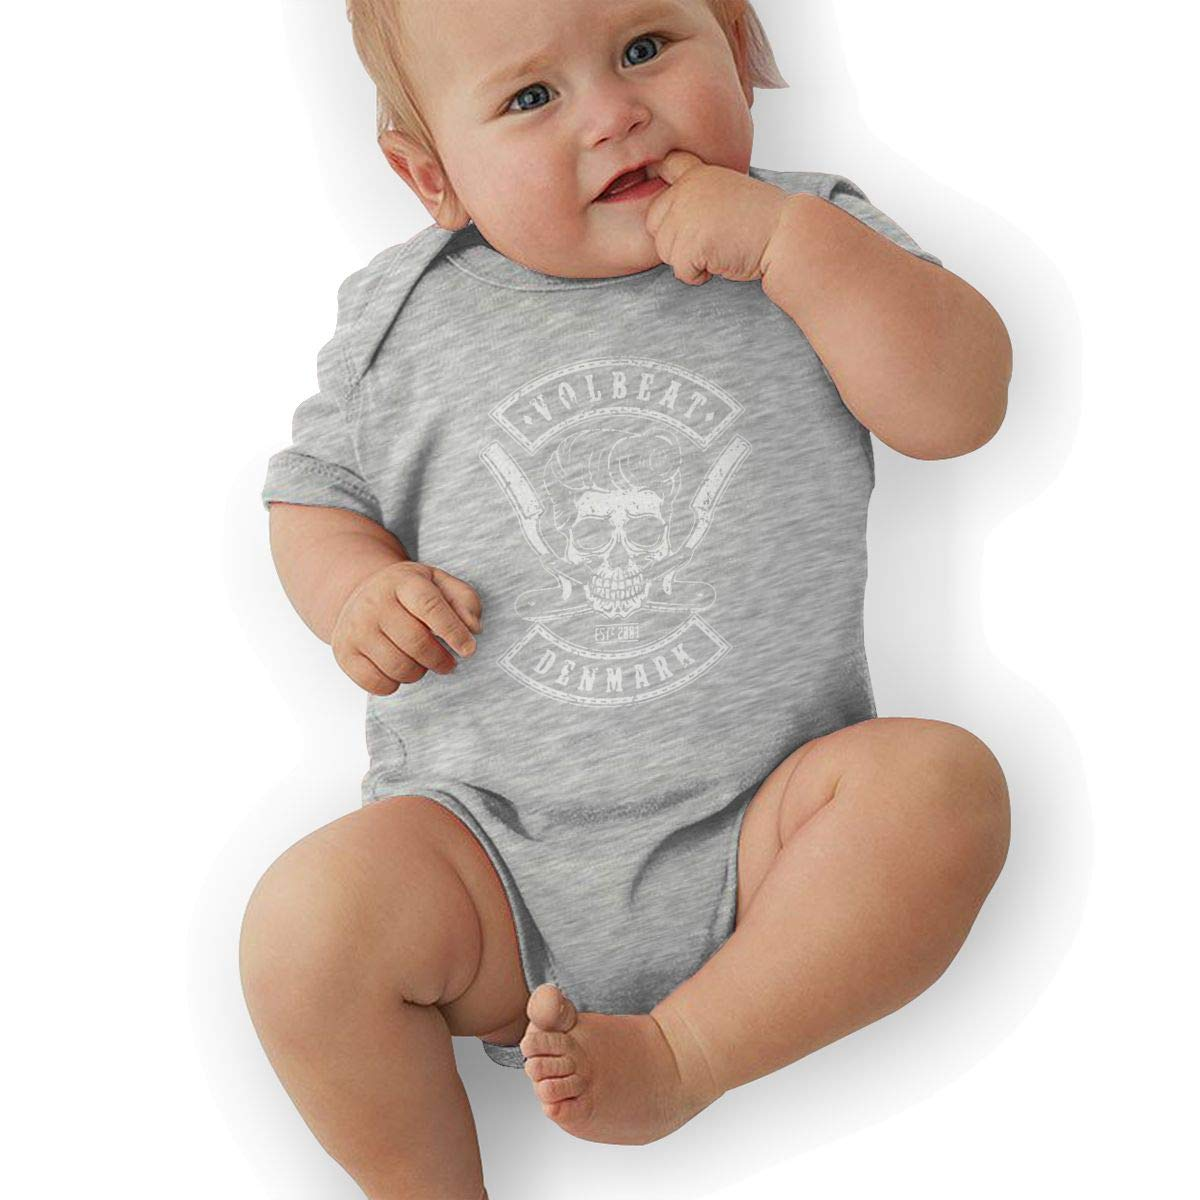 HappyLifea Volbeat Baby Pajamas Bodysuits Clothes Onesies Jumpsuits Outfits Black